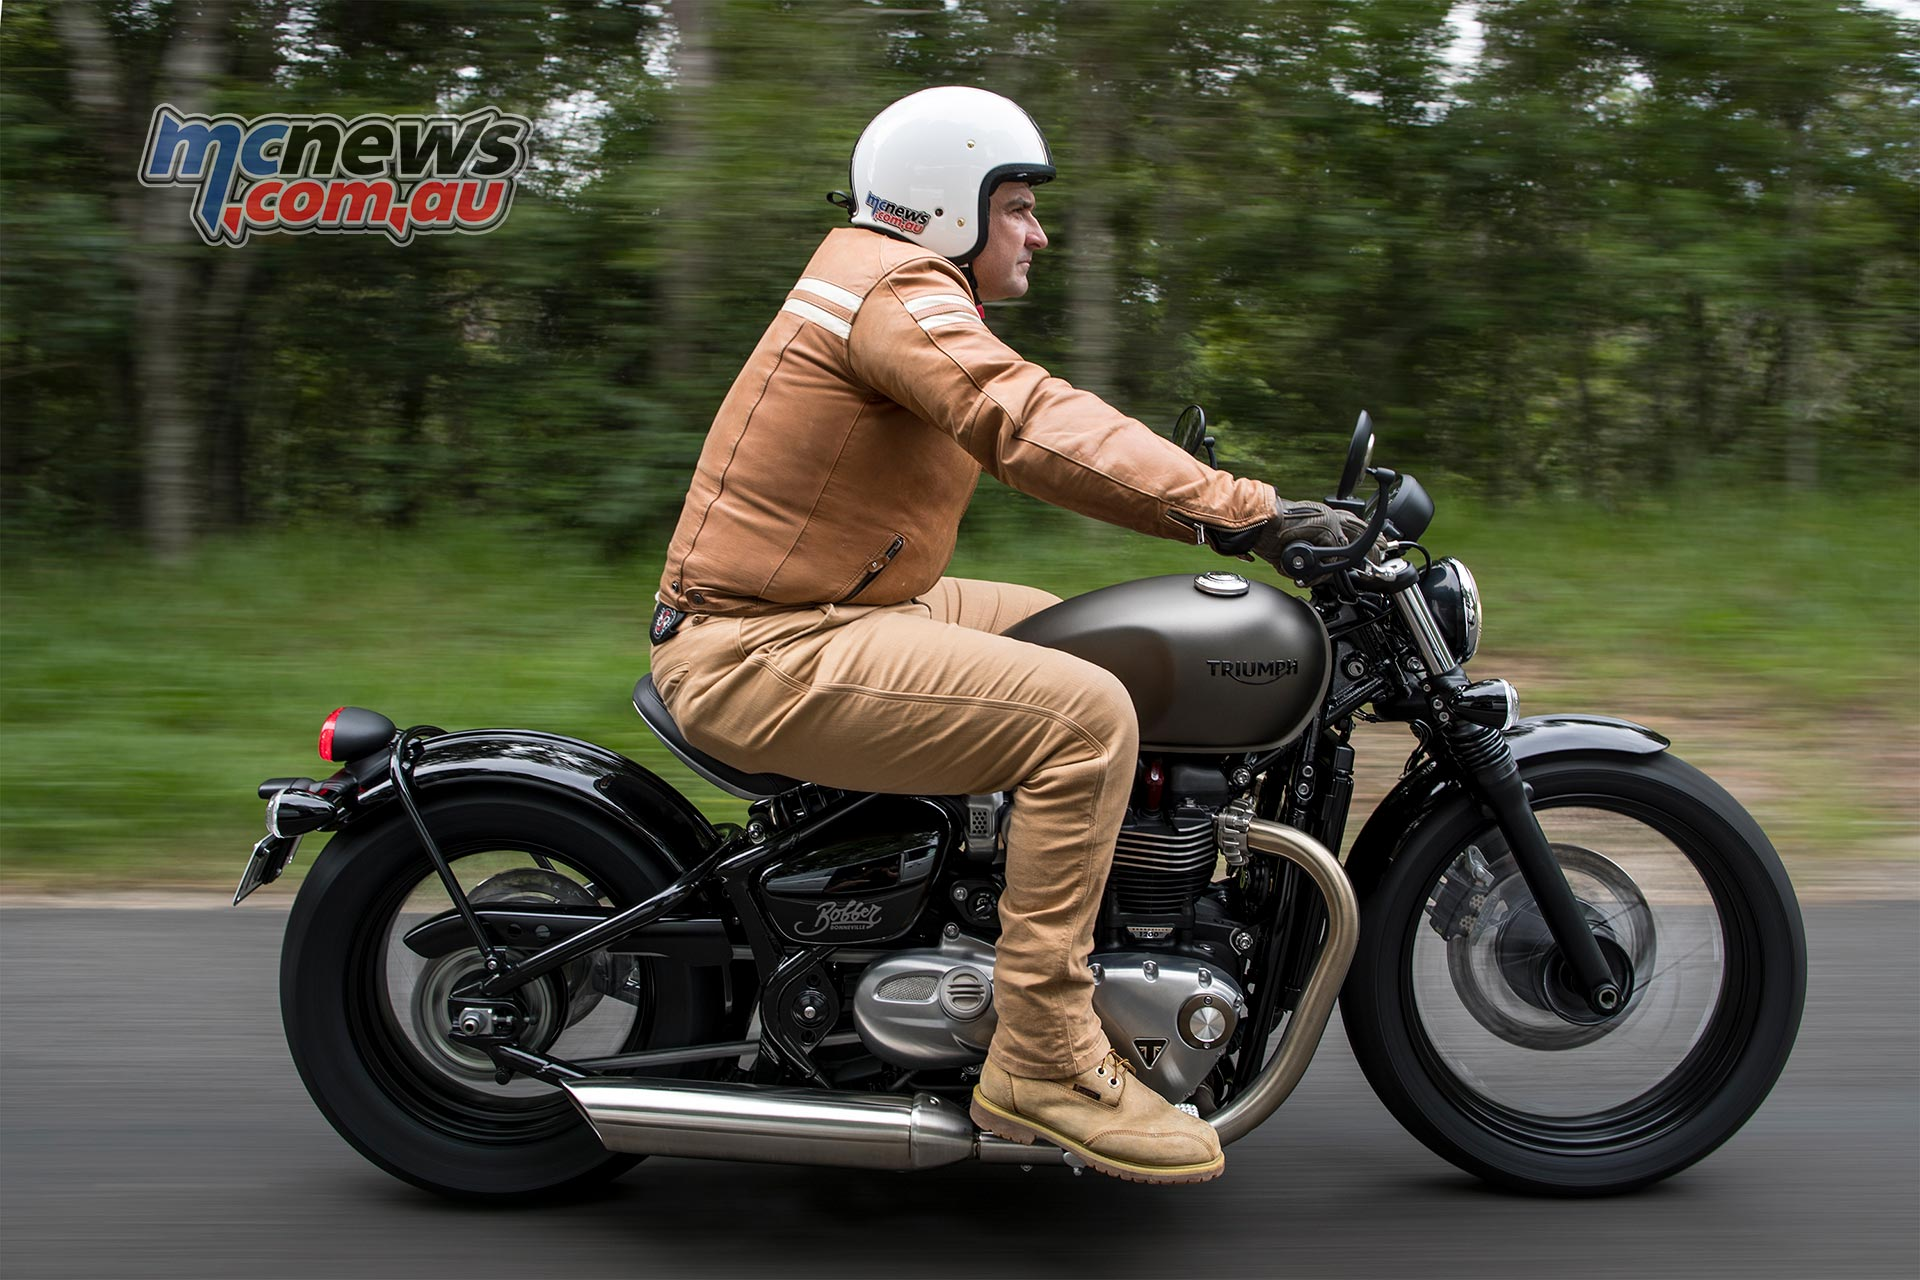 Triumph Bobber Review Does The Show Have Go Motorcycle News Sport And Reviews